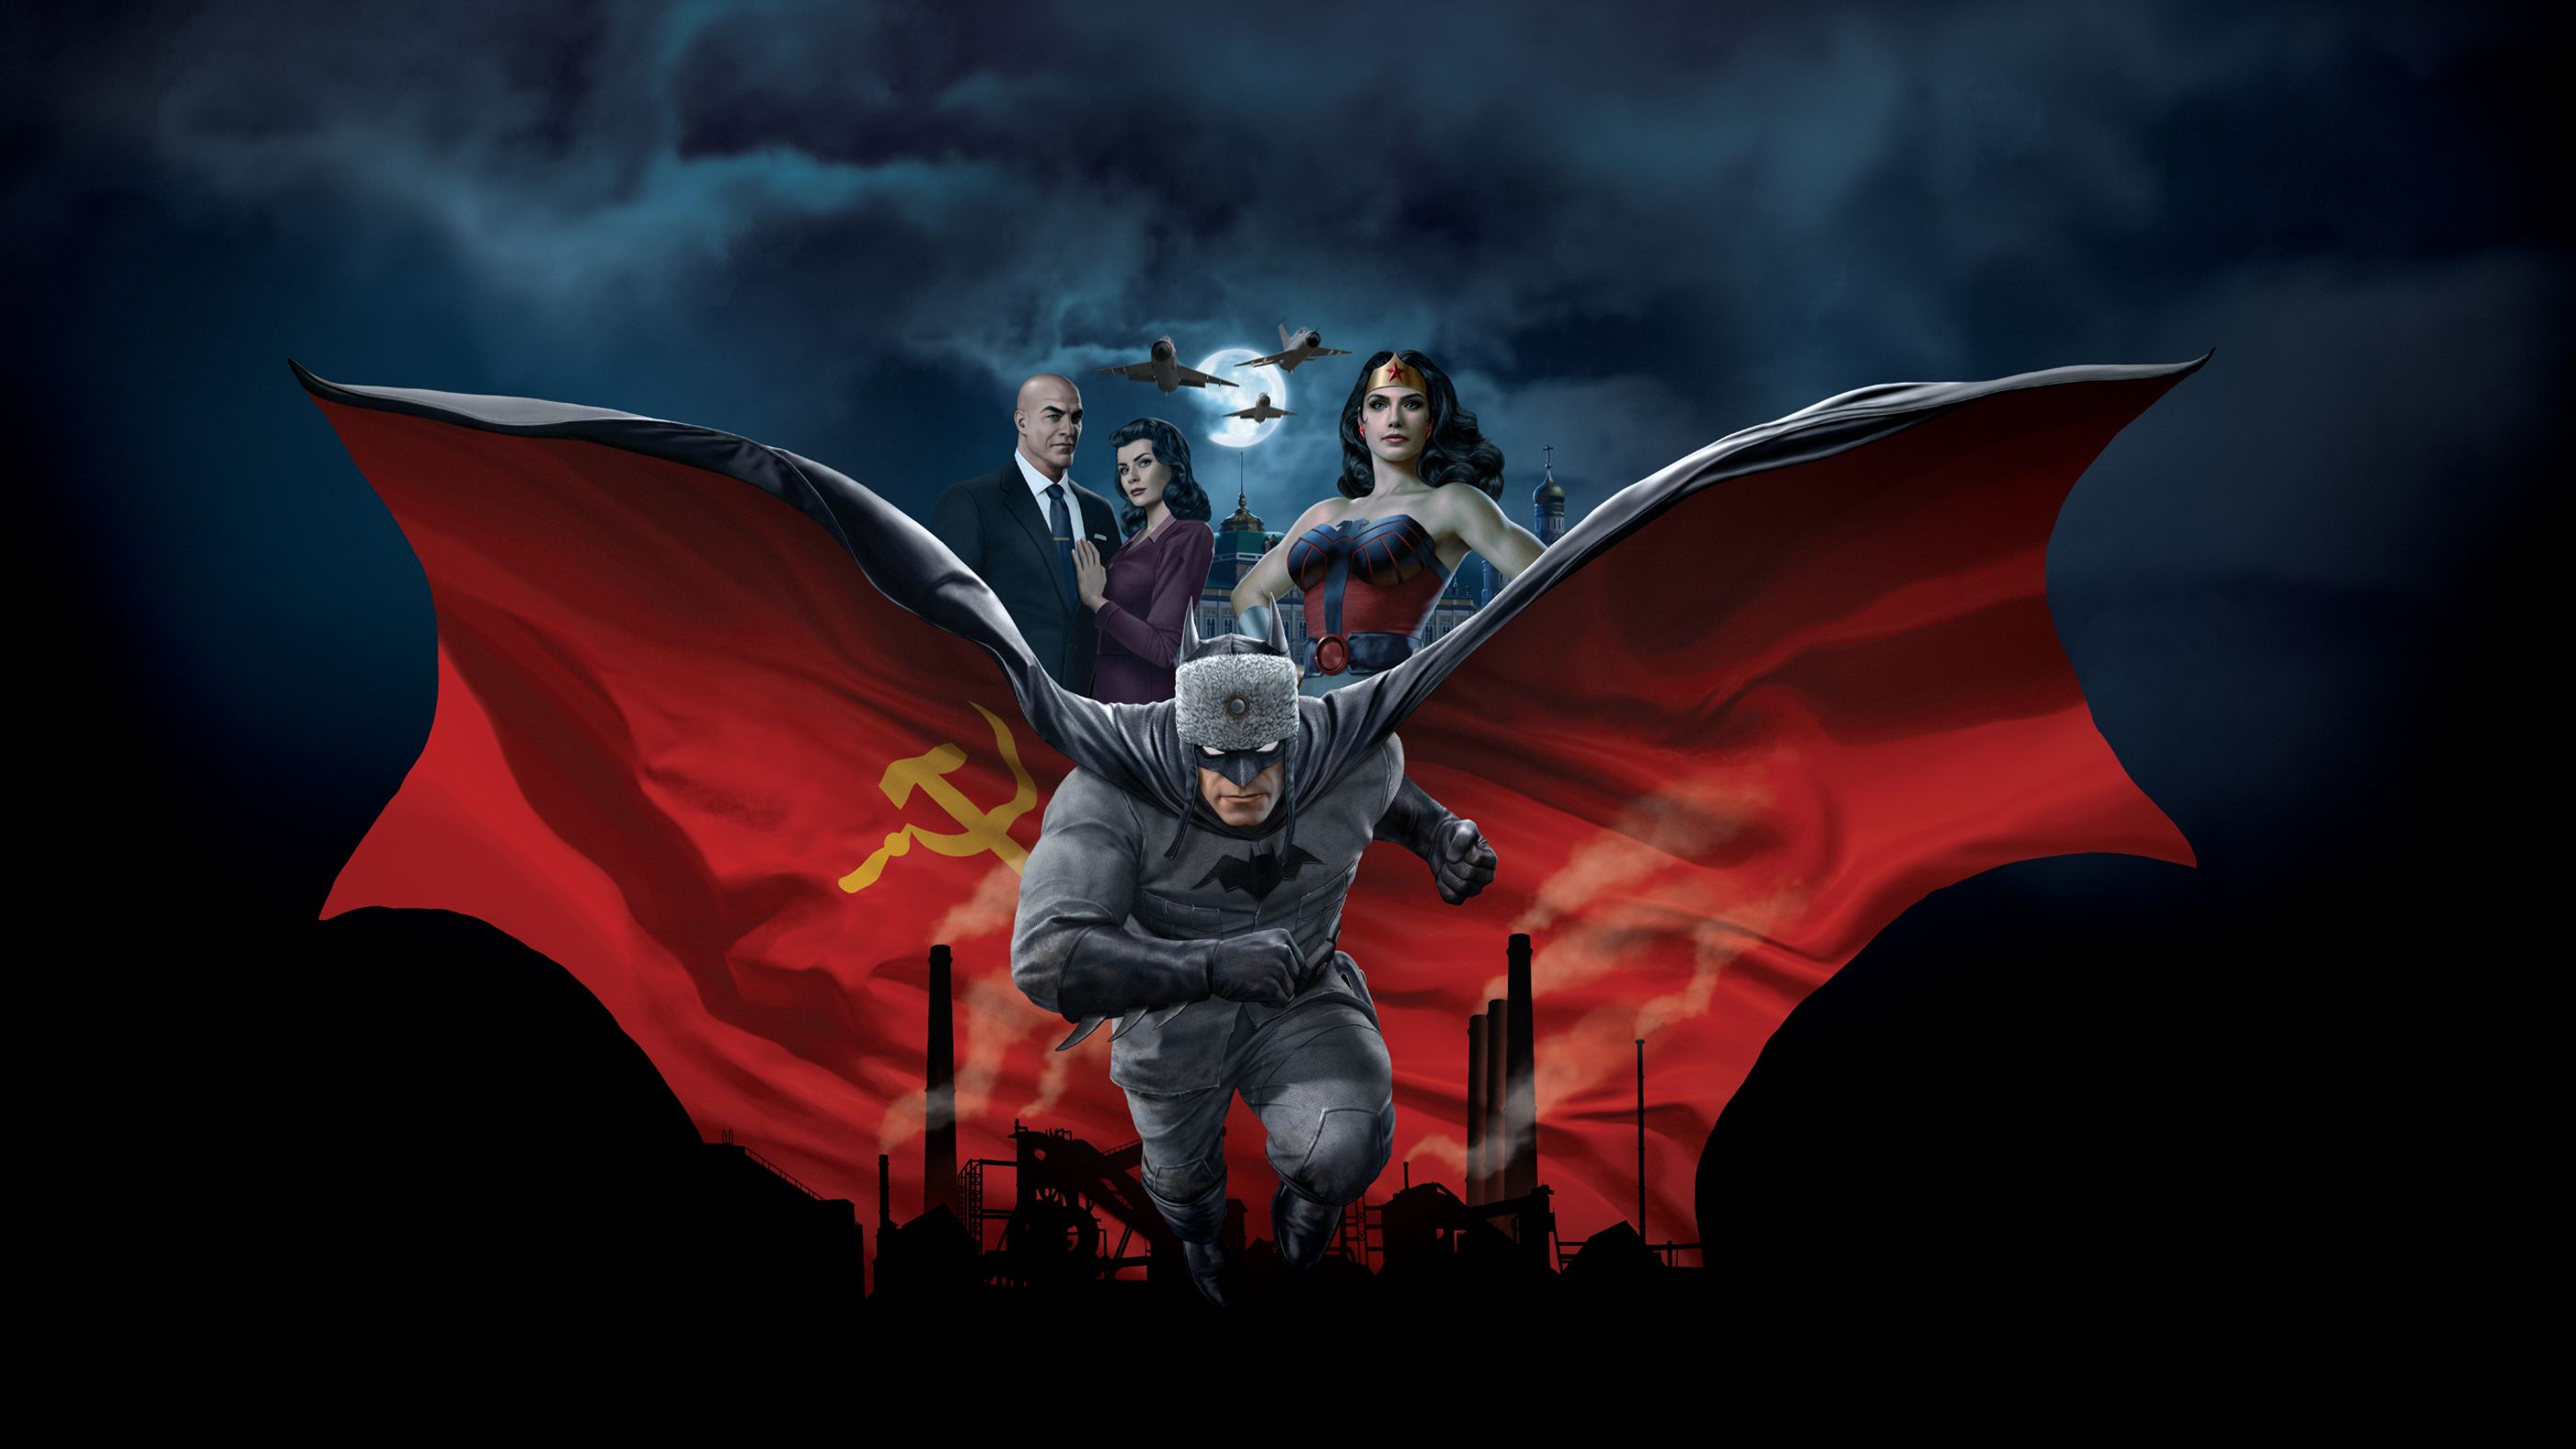 Superman Red Son Full Movie Movies Anywhere